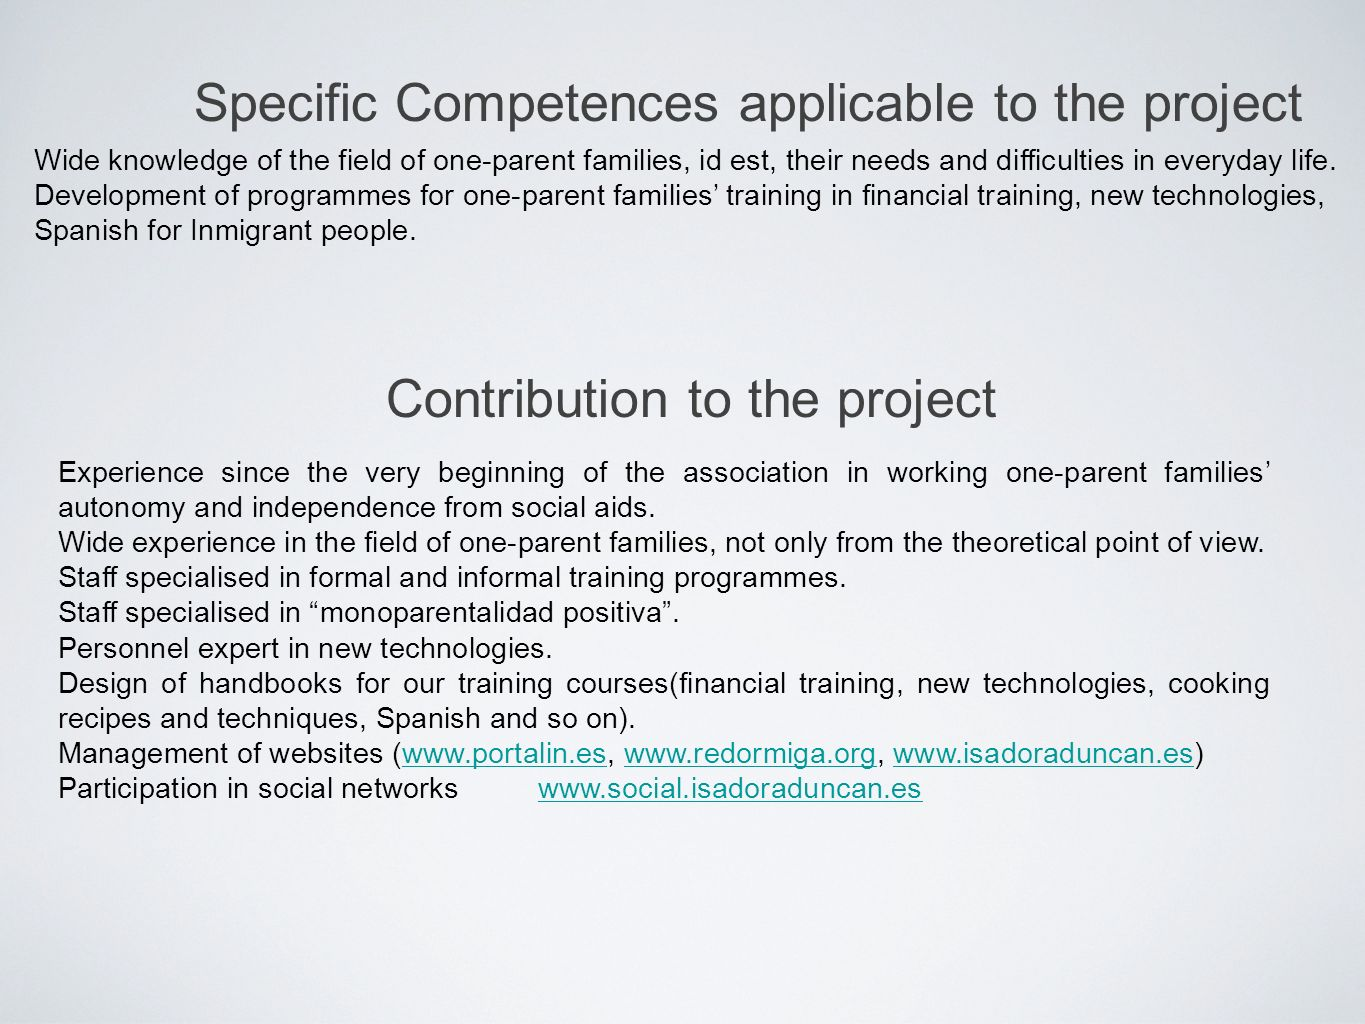 Specific Competences applicable to the project Wide knowledge of the field of one-parent families, id est, their needs and difficulties in everyday life.